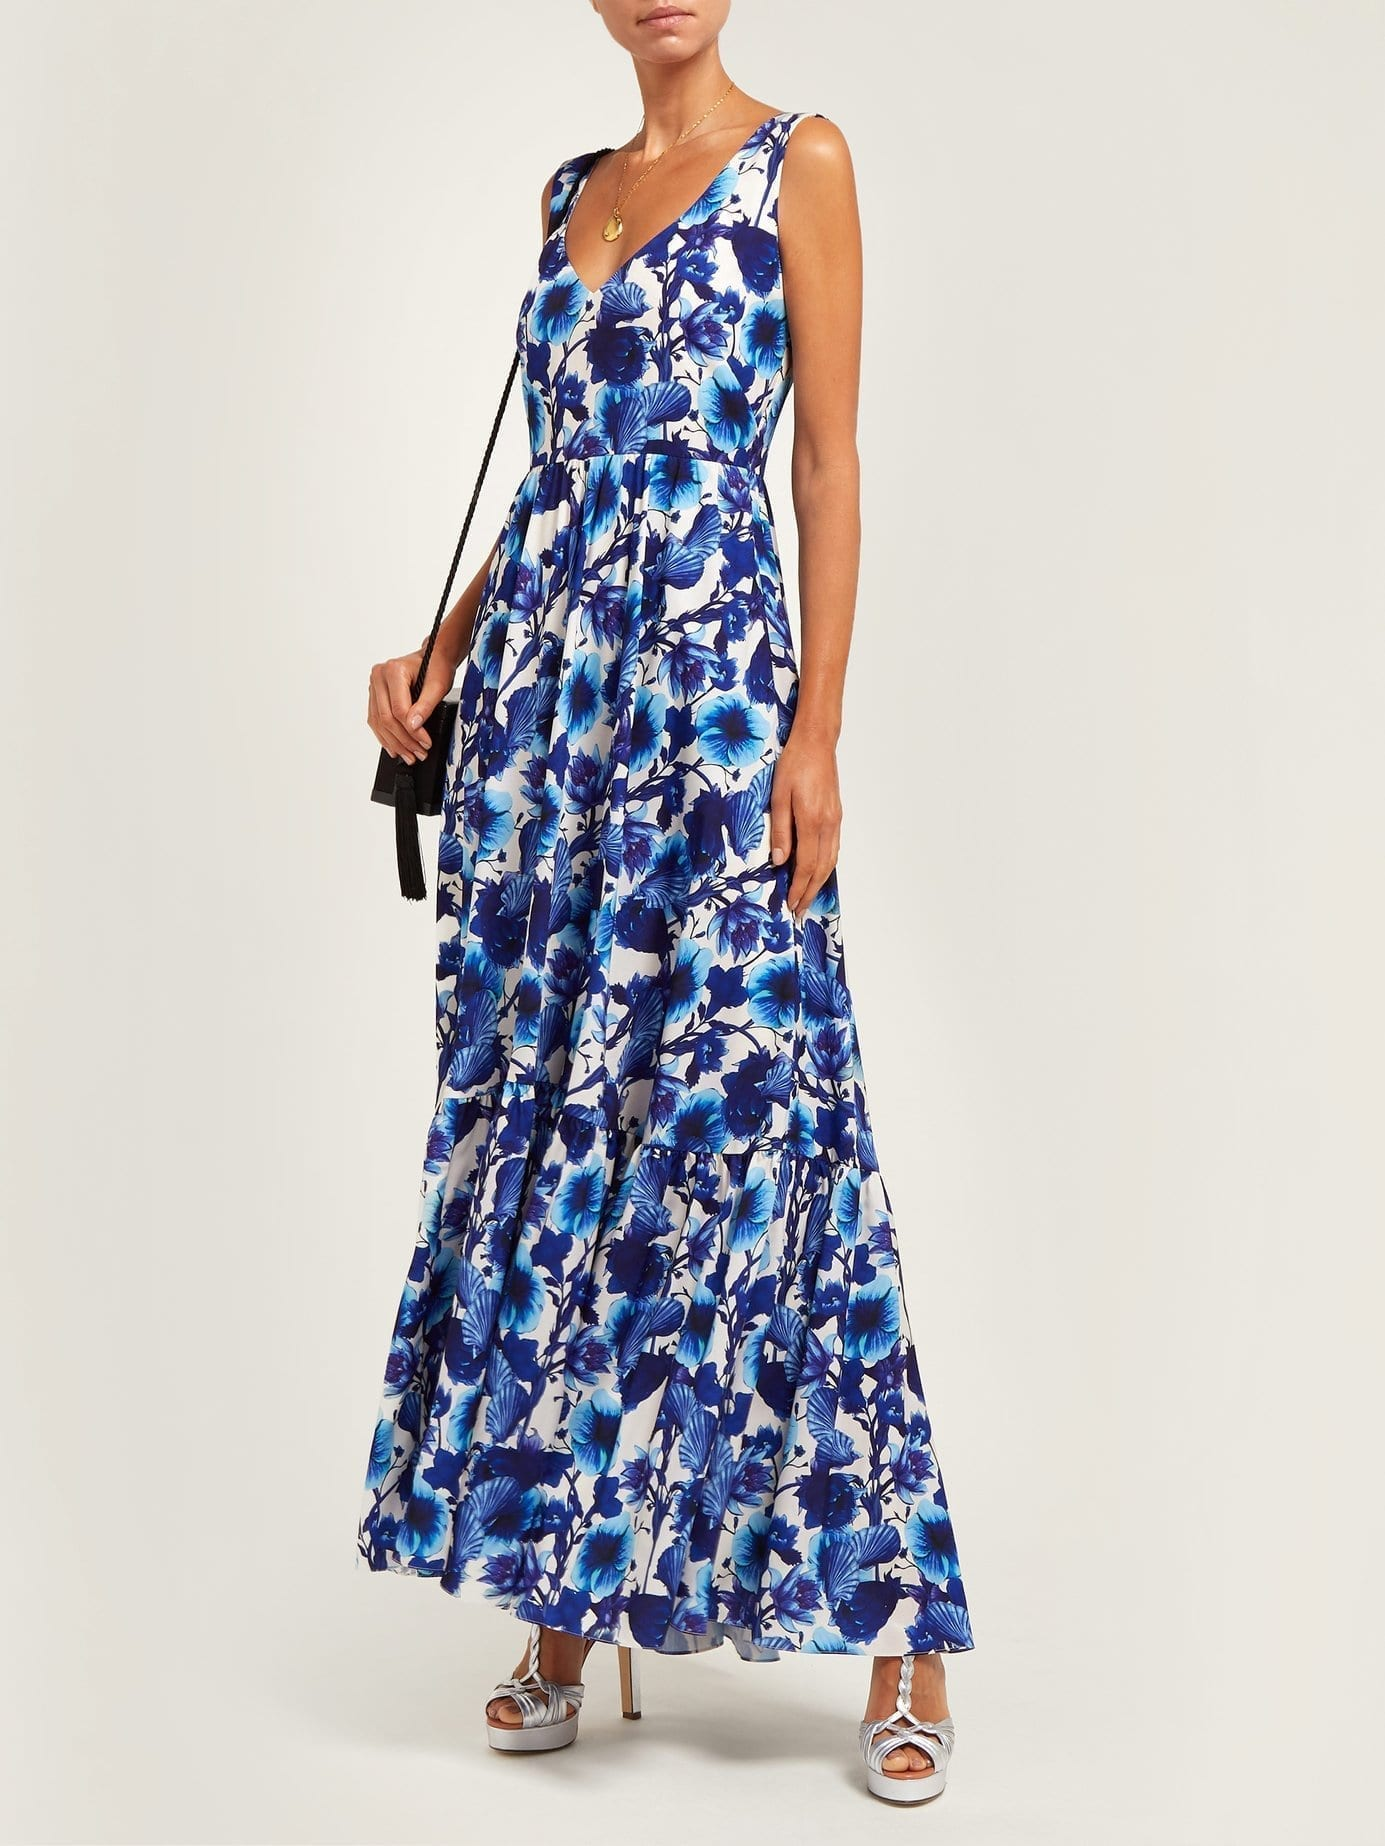 BORGO DE NOR Venetia Venus-Print Crepe Maxi White Dress